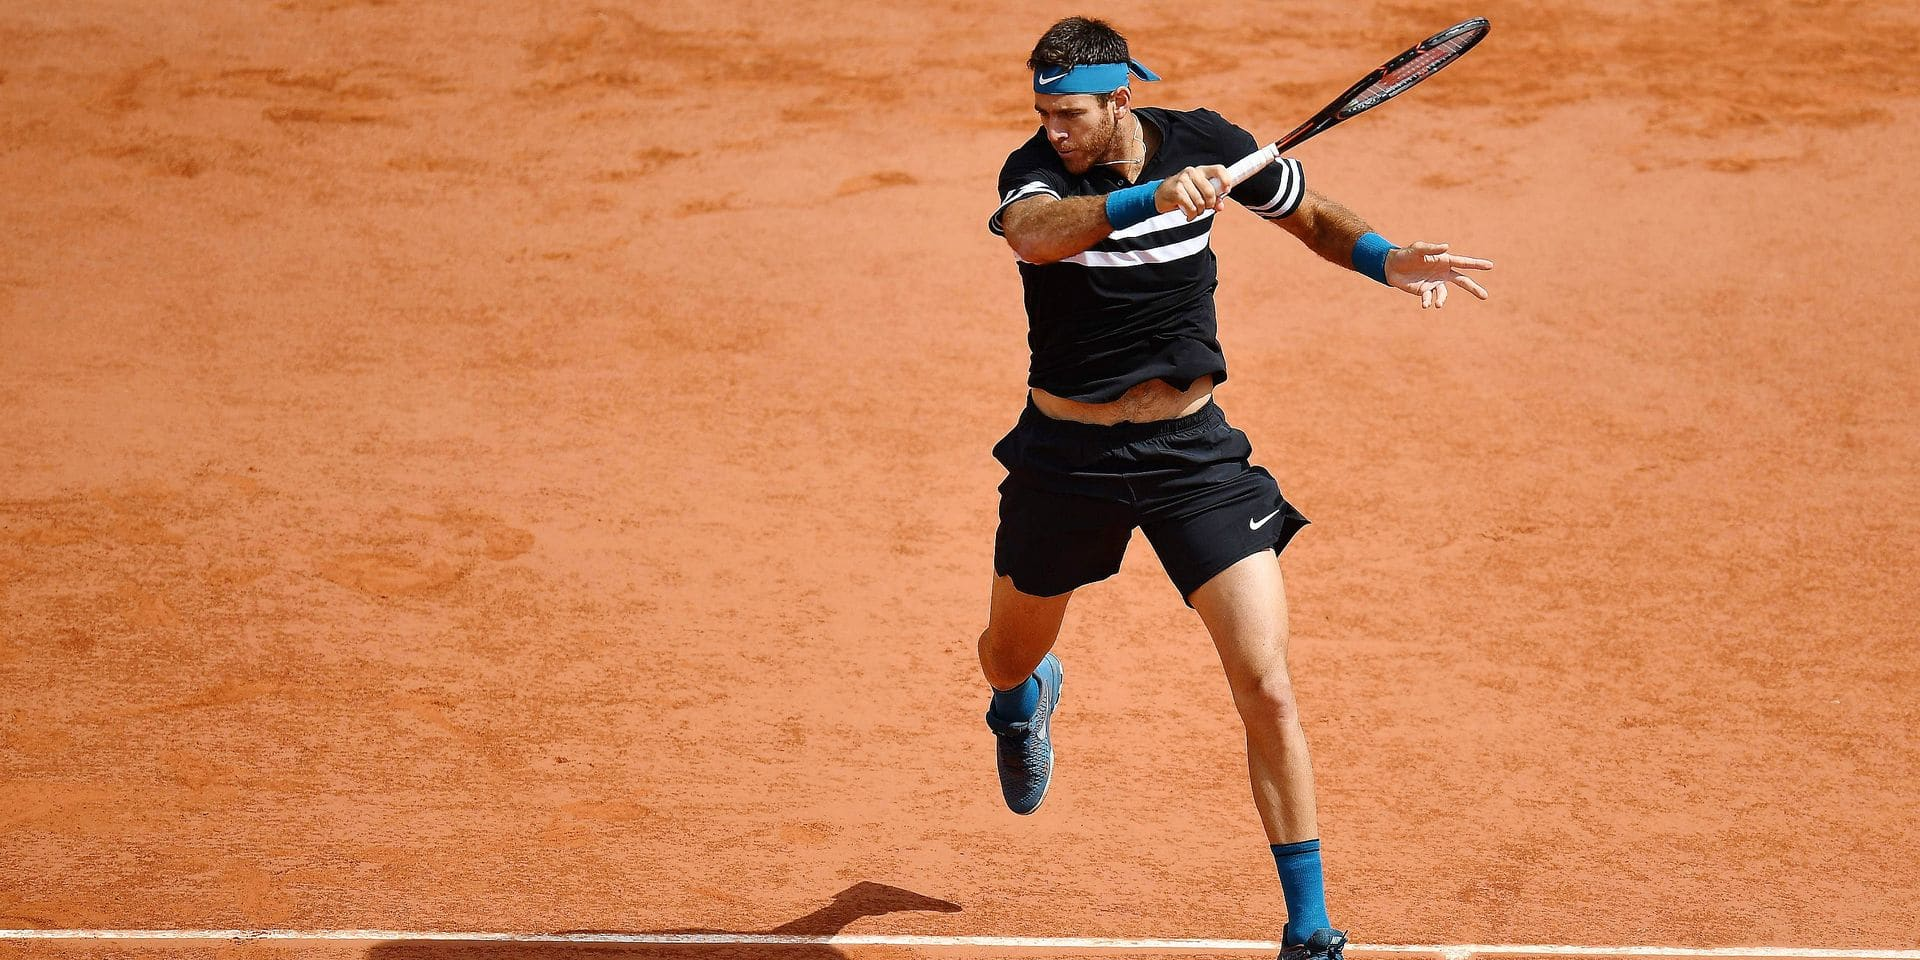 Argentina's Juan Martin del Potro plays a forehand return to Croatia's Marin Cilic during their men's singles quarter-final match on day twelve of The Roland Garros 2018 French Open tennis tournament in Paris on June 7, 2018. / AFP PHOTO / Christophe ARCHAMBAULT